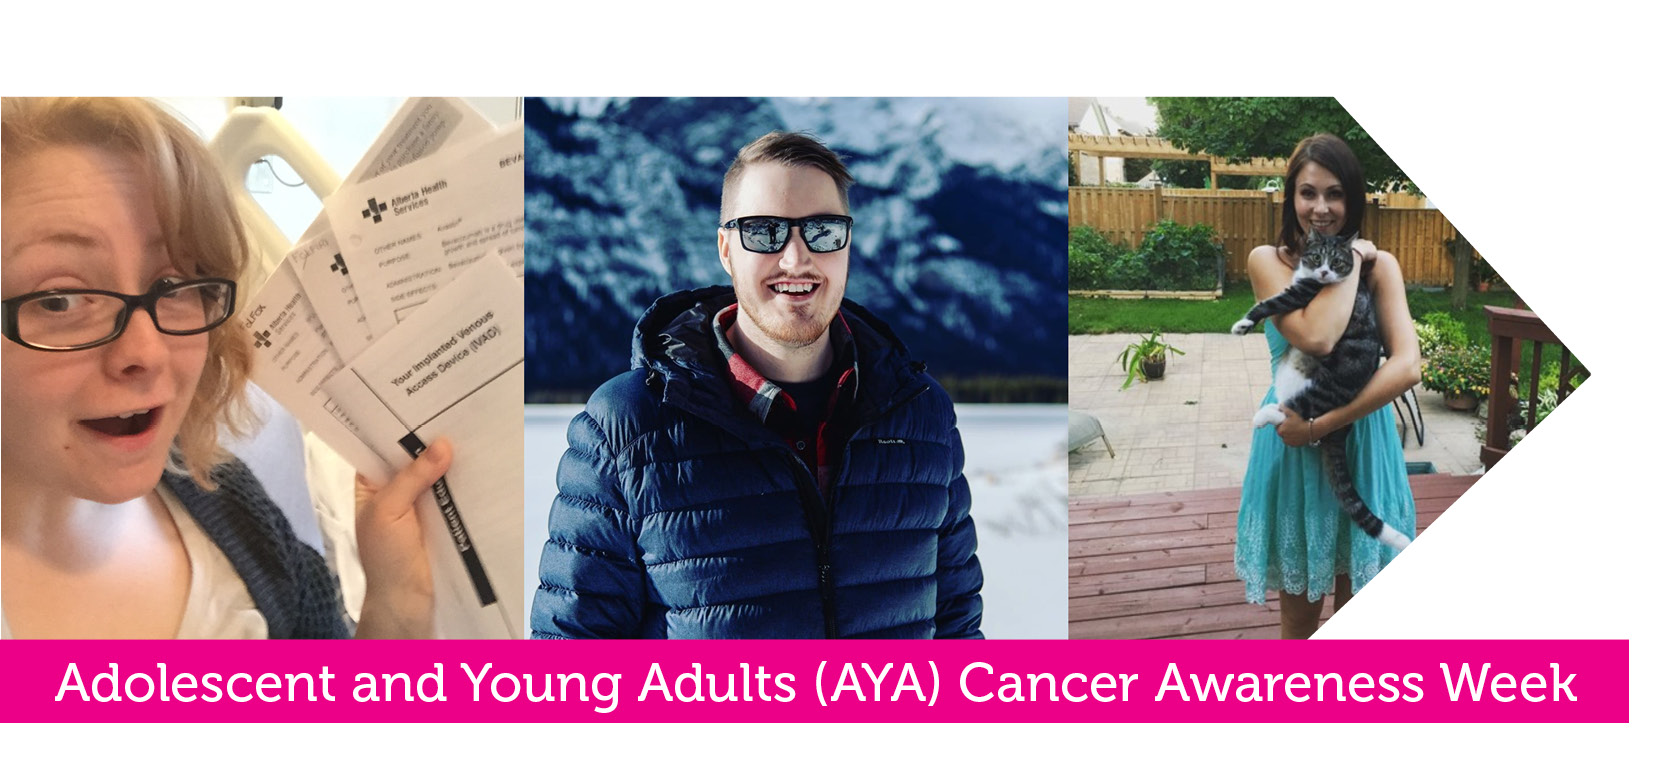 Adolescent and Young Adults (AYA) Cancer Awareness Week